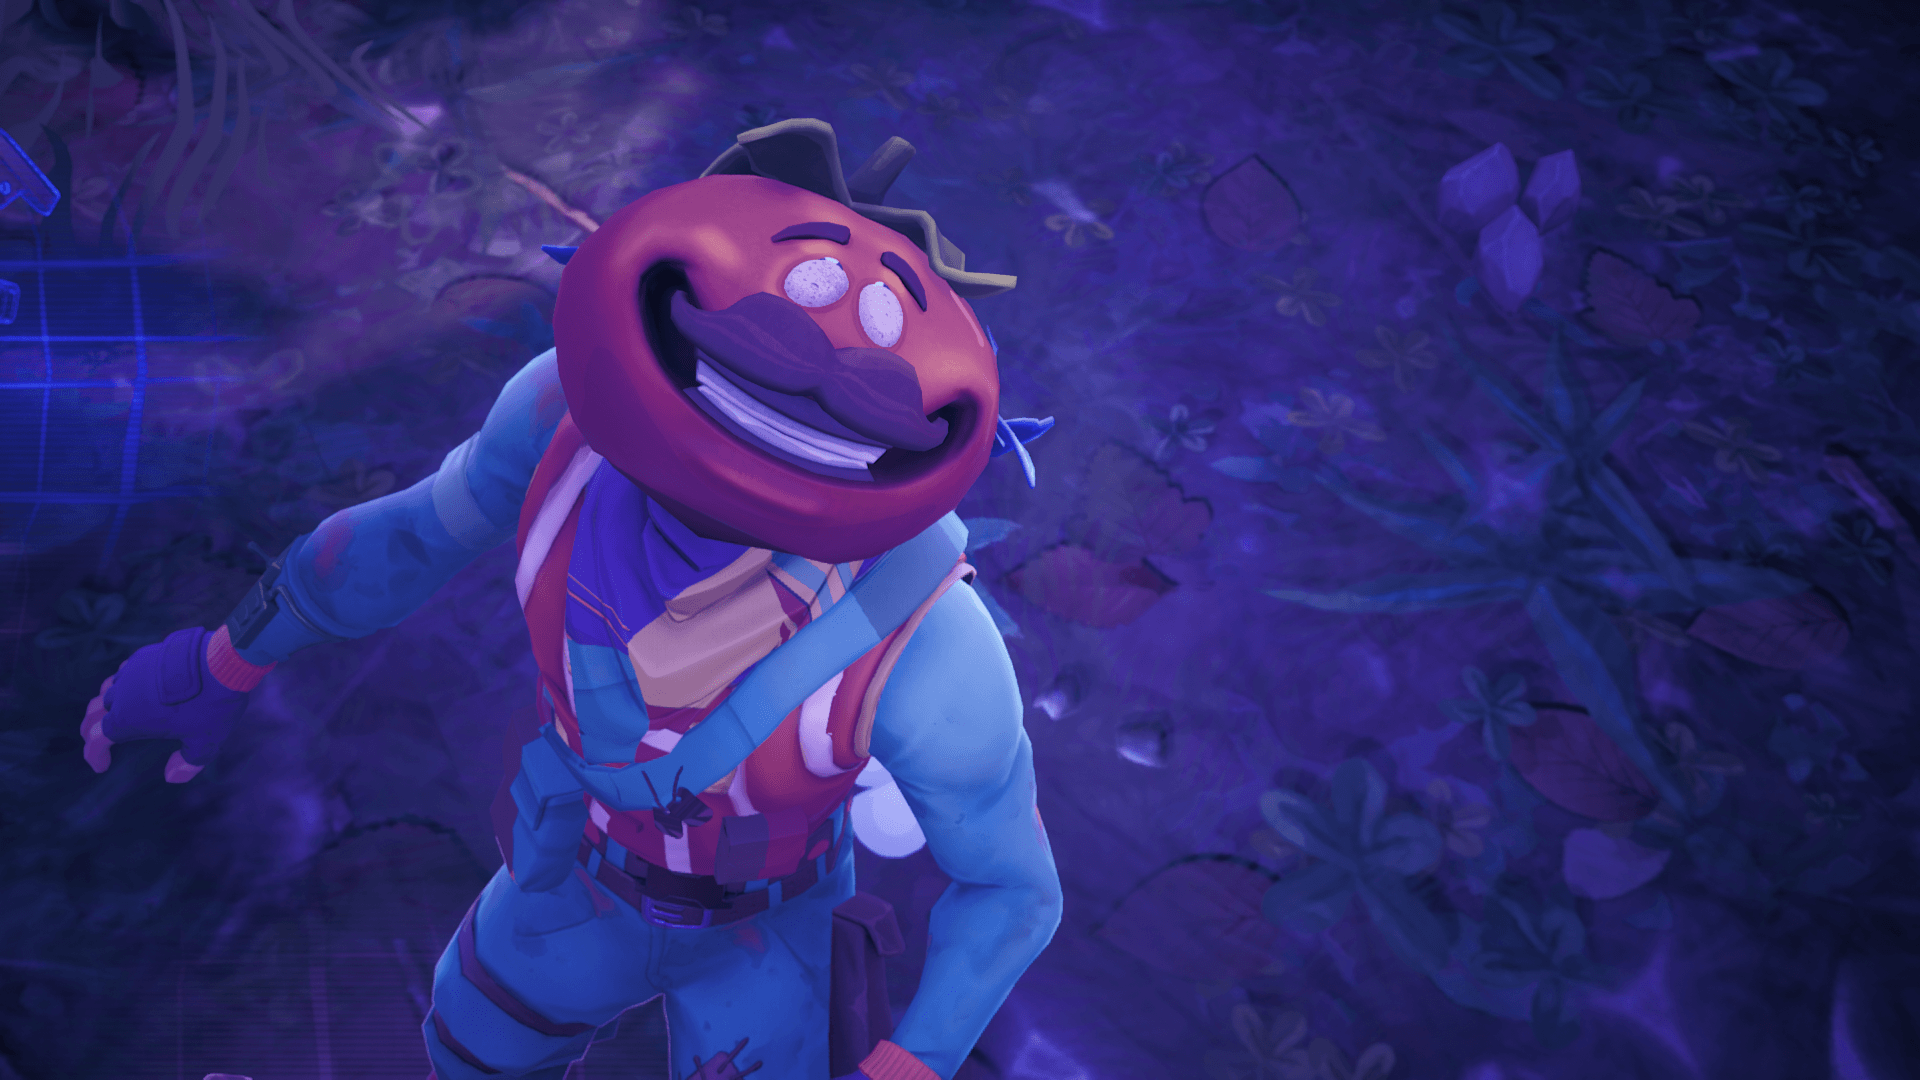 CREEPY] If you go into the replay mode the time tomato head dies his ...